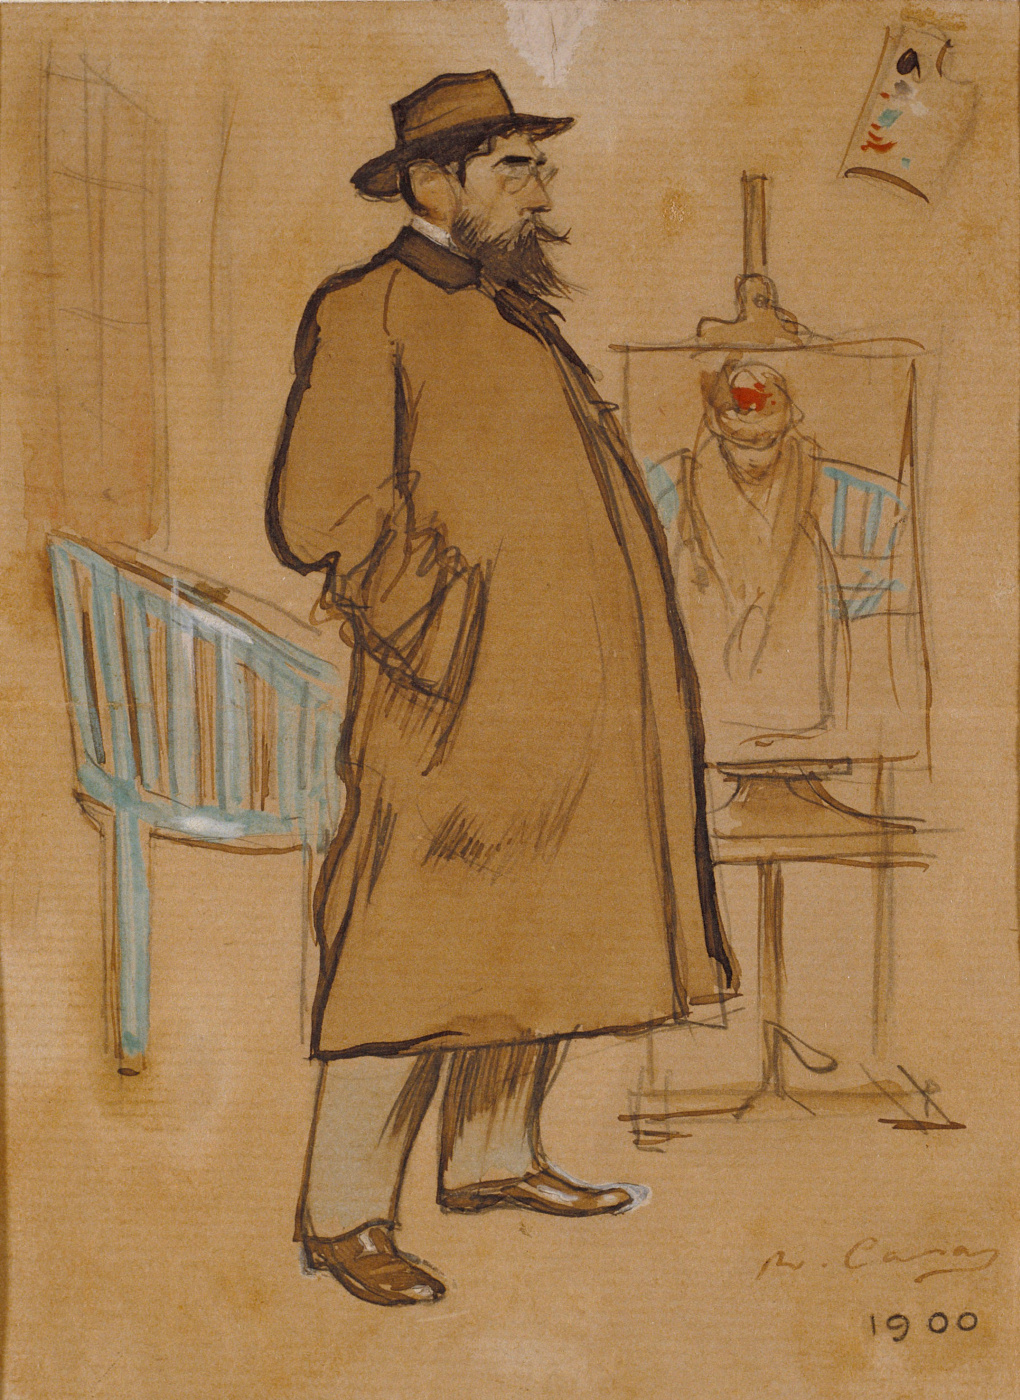 Ramon Casas i Carbó. Self-portrait